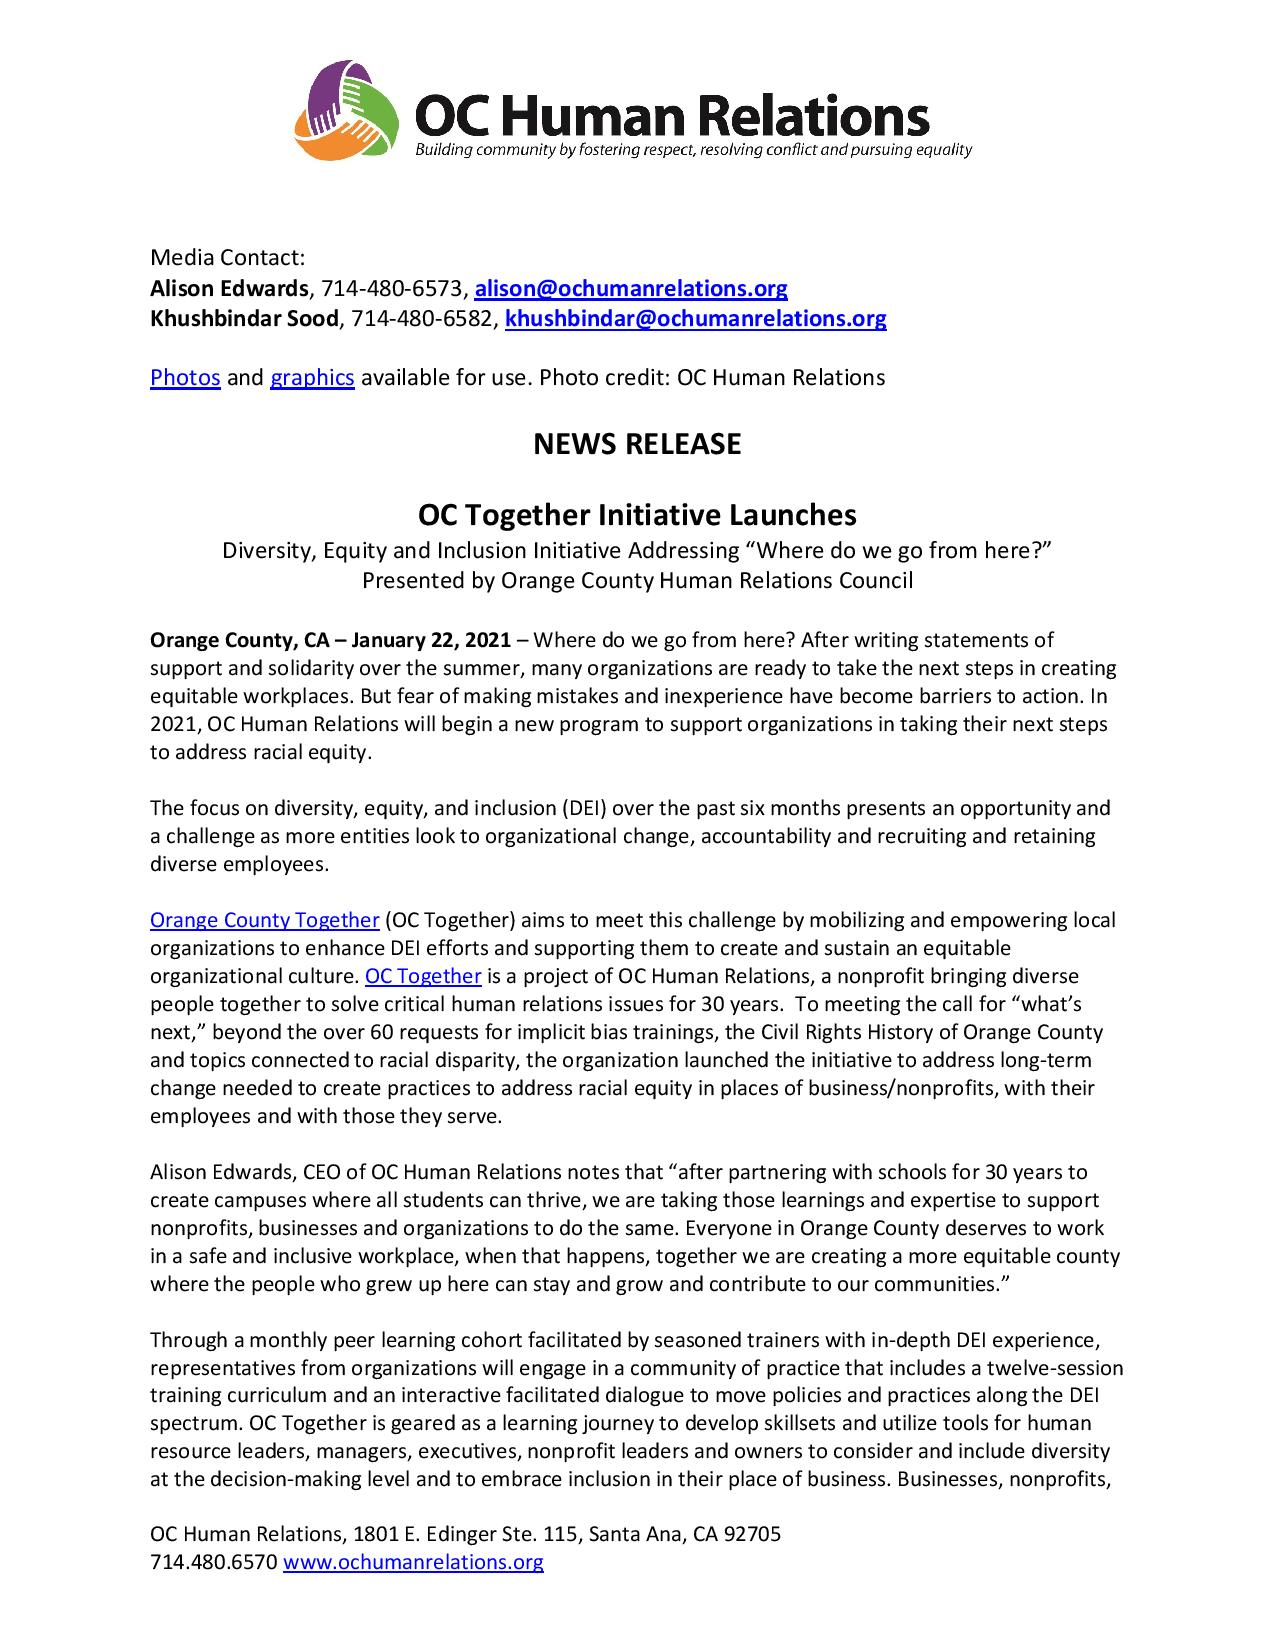 News Release: OC Together Initiative Launches